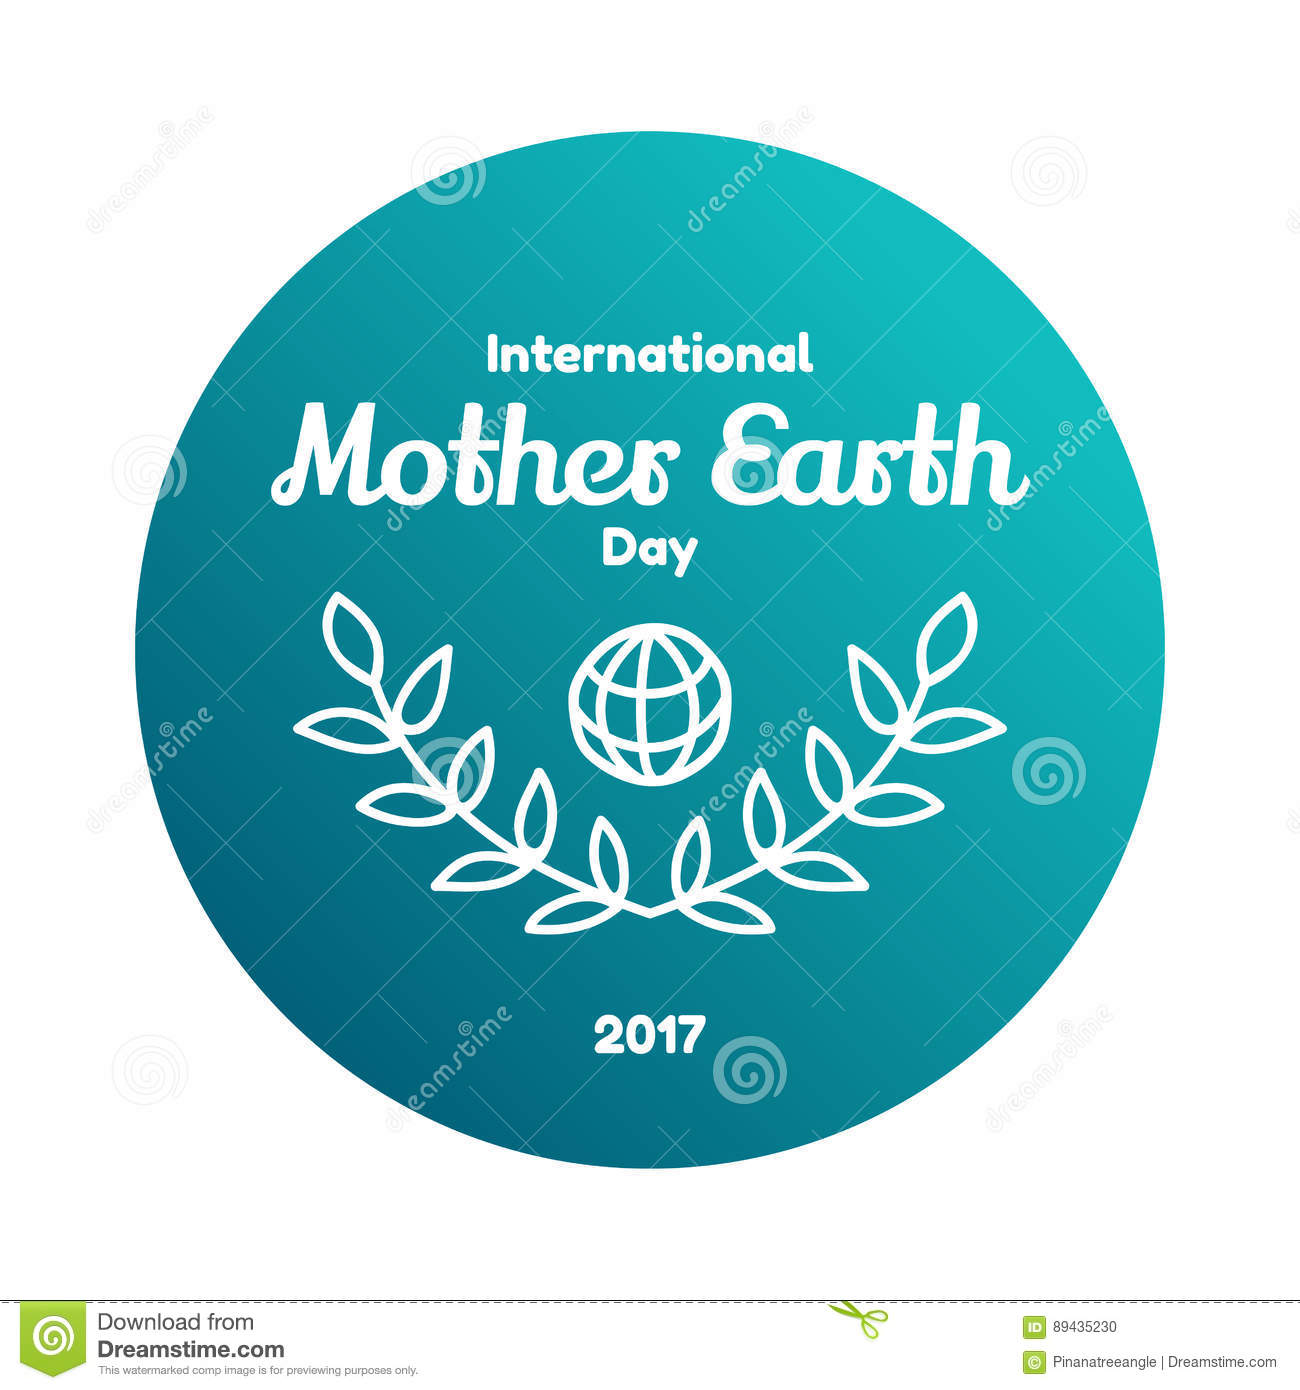 International mother earth day april 22 stock illustration international mother earth day april 22 buycottarizona